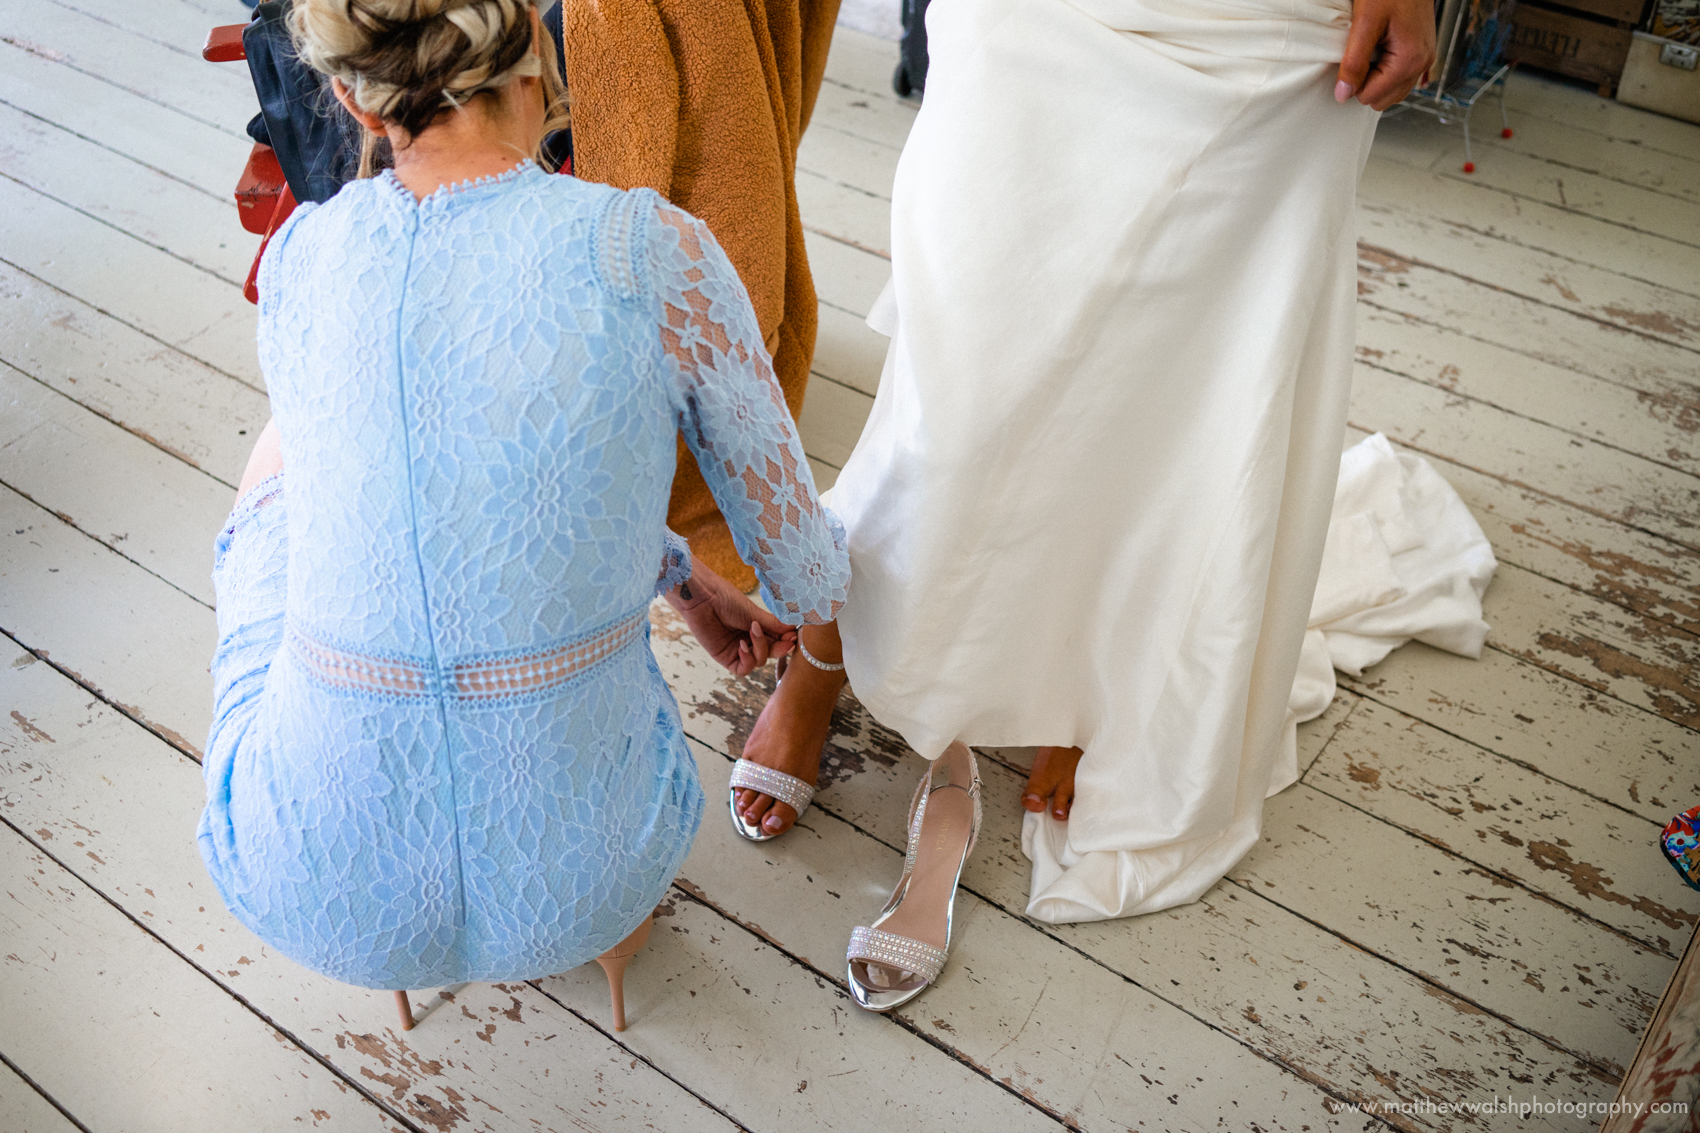 Sister of the bride helping the bride with her shoes